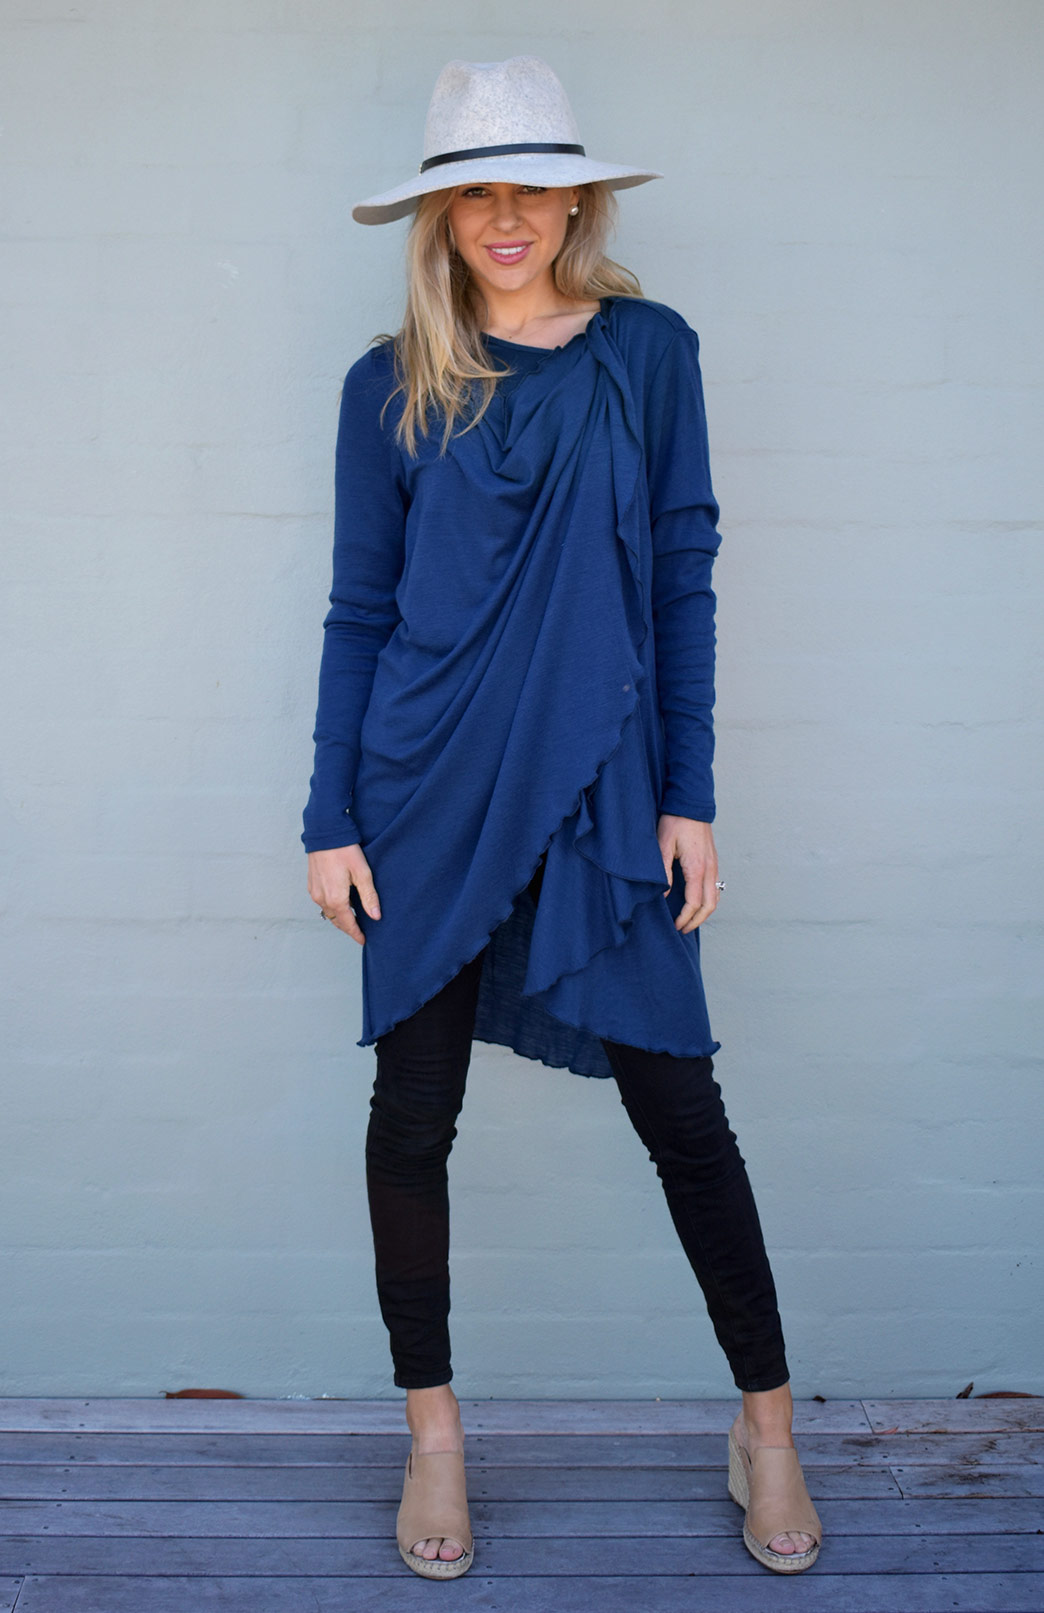 Swing Cardigan - Women's Indigo Blue Long Sleeved Wrap Around Merino Wool Swing Cardigan - Smitten Merino Tasmania Australia